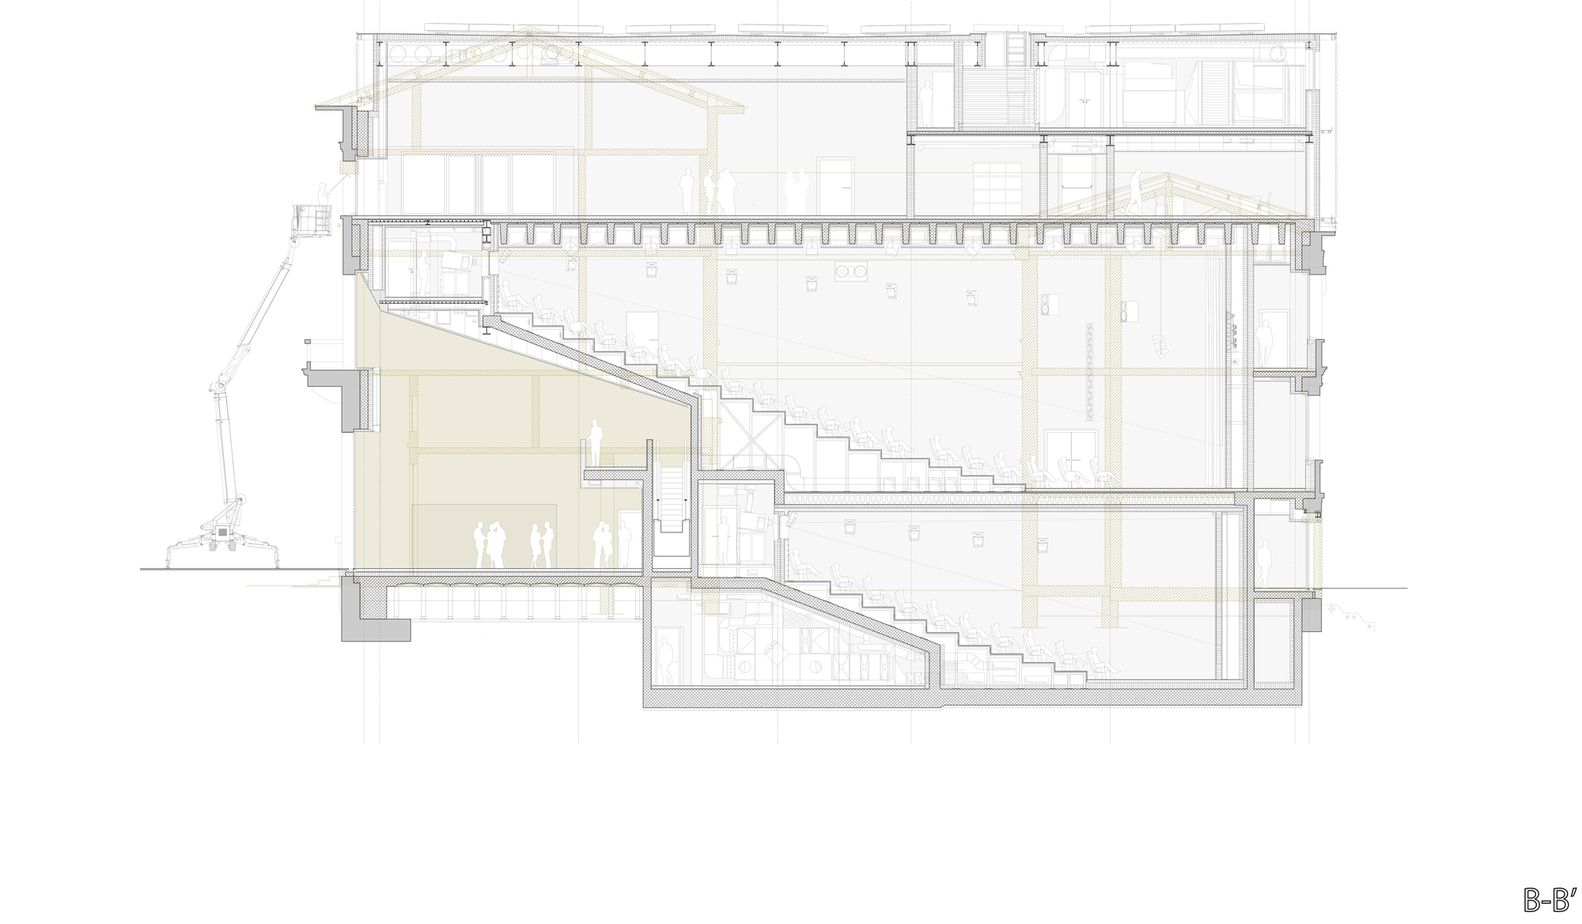 Gallery Of Cinemas And Movie Theaters Examples In Plan And Section 14 Movie Theater Cinema Preservation Architecture